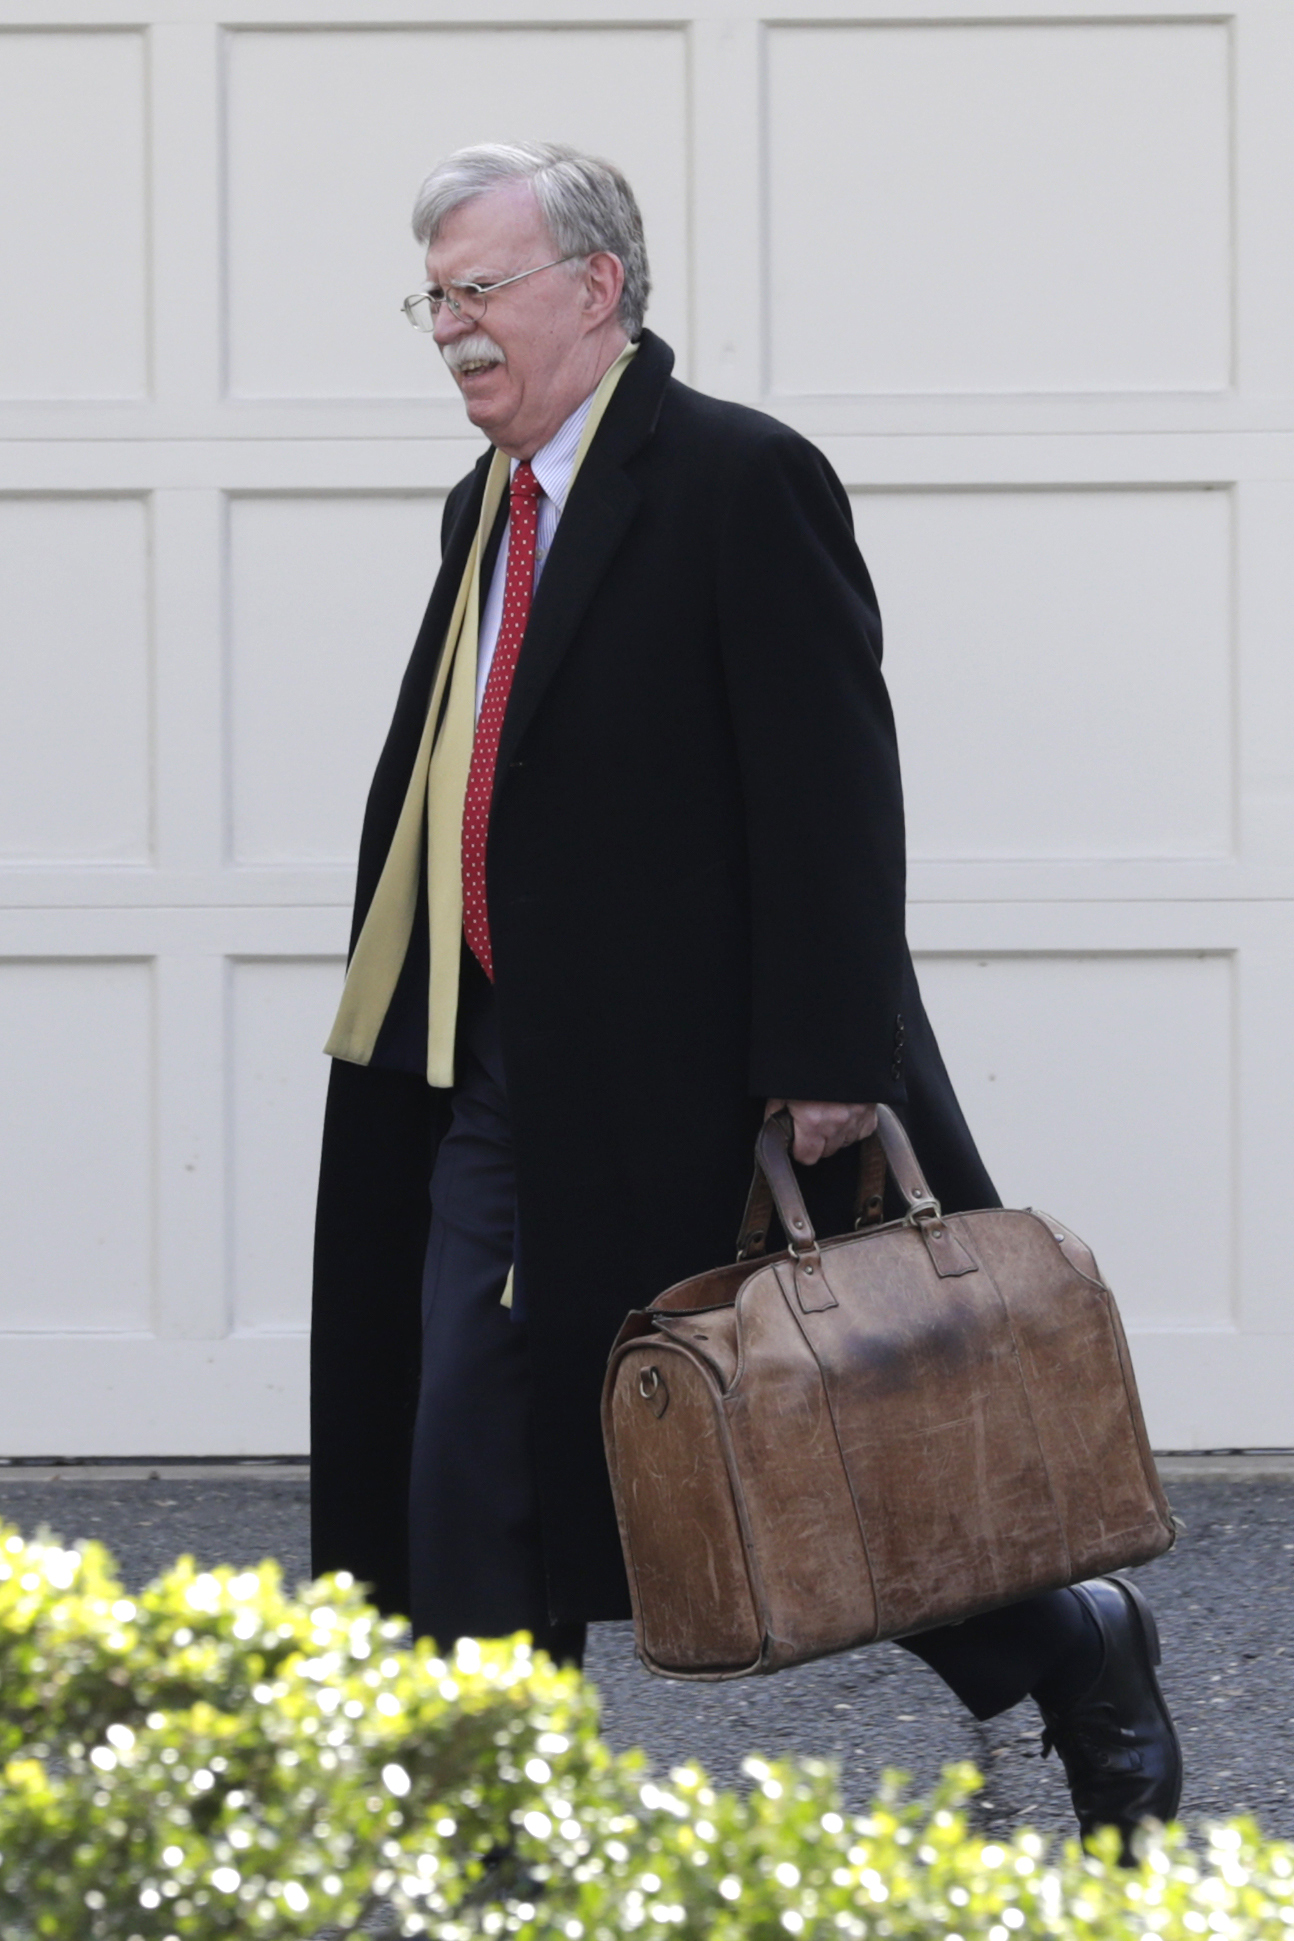 Eliot Engel says John Bolton urged him in September to probe ouster of Ukraine ambassador